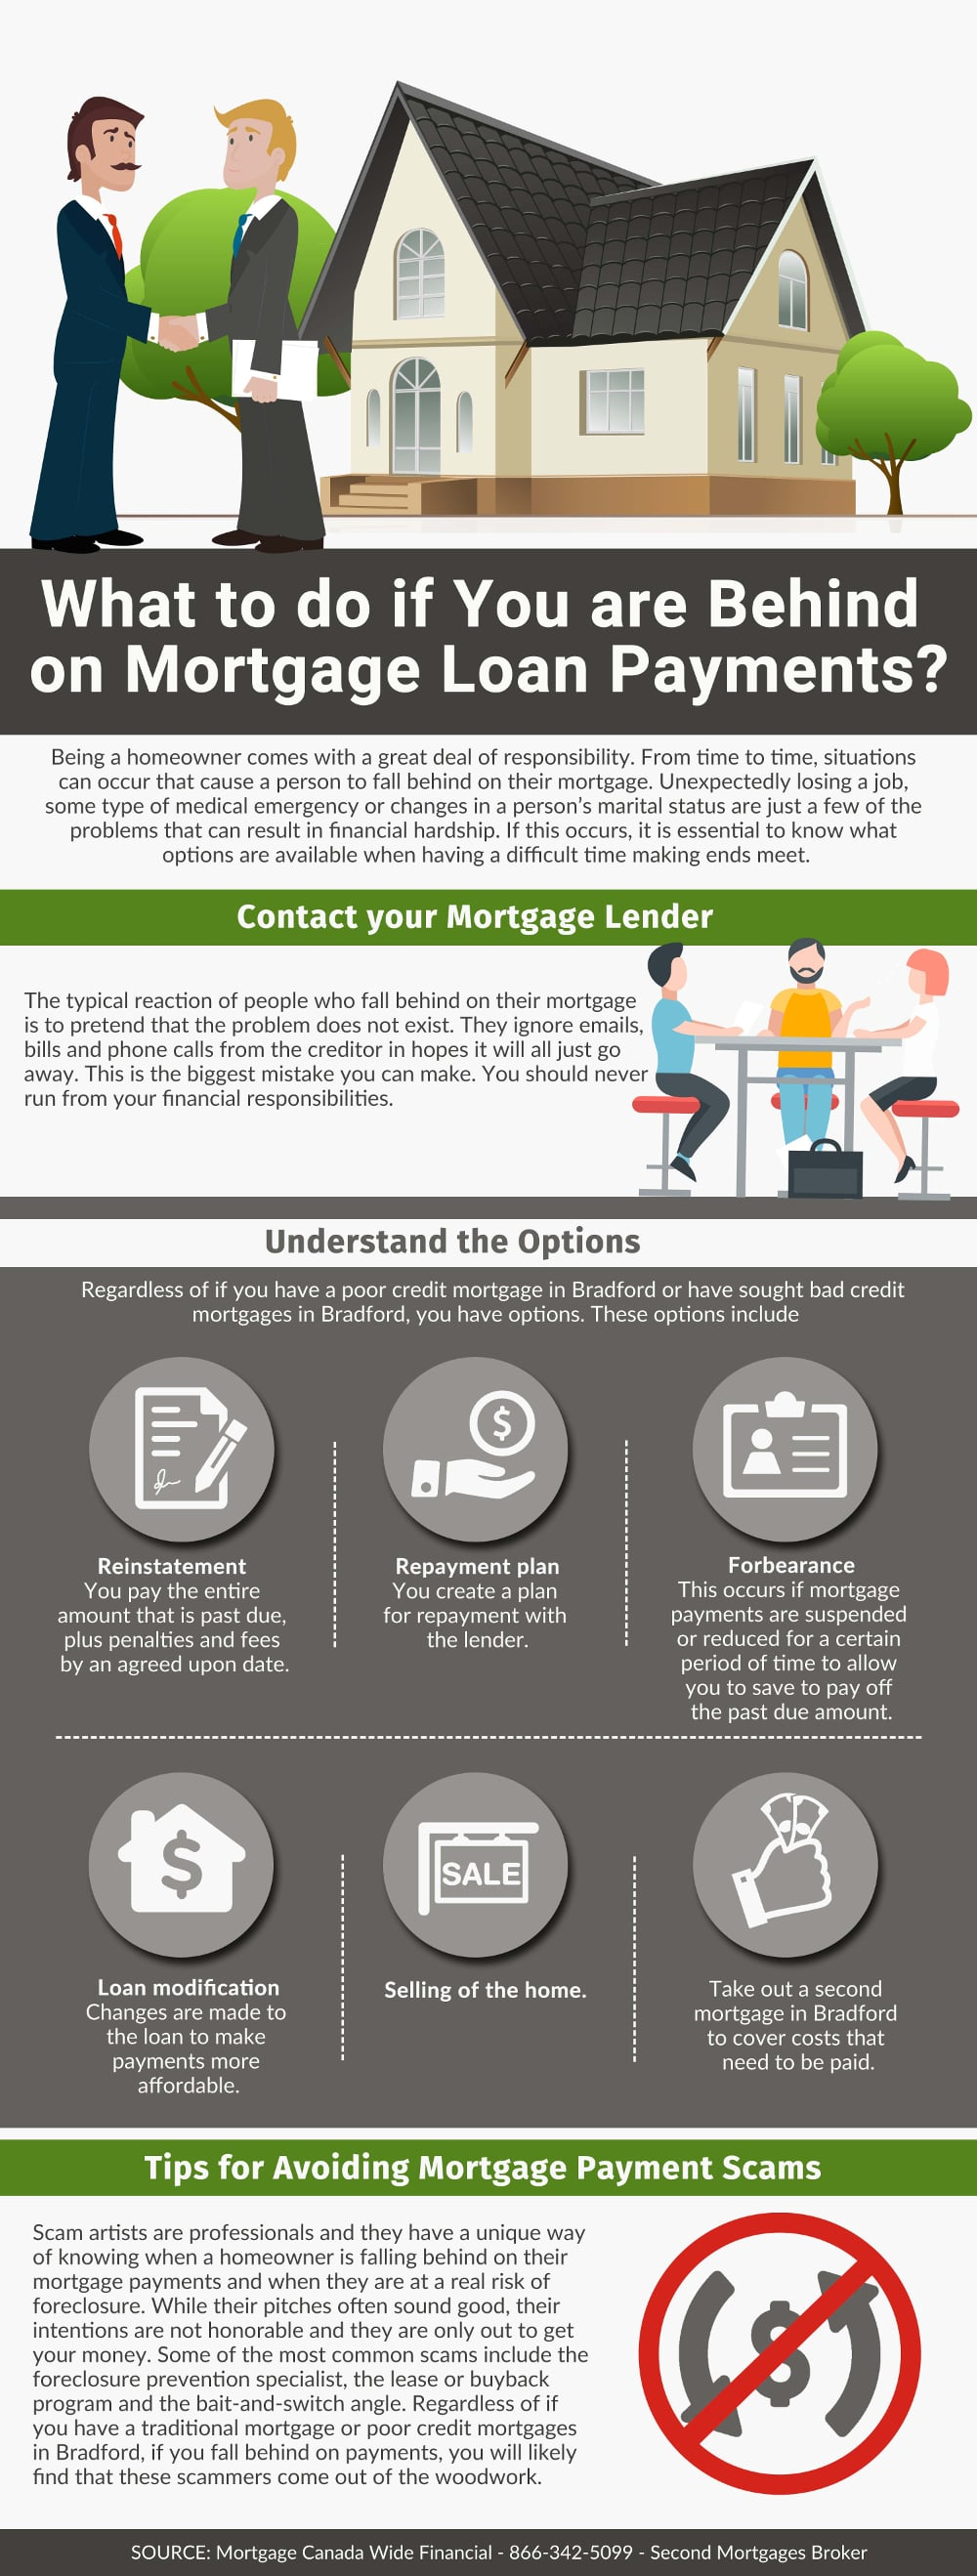 What to do if You are Behind on Mortgage Loan Payments? - Infographic